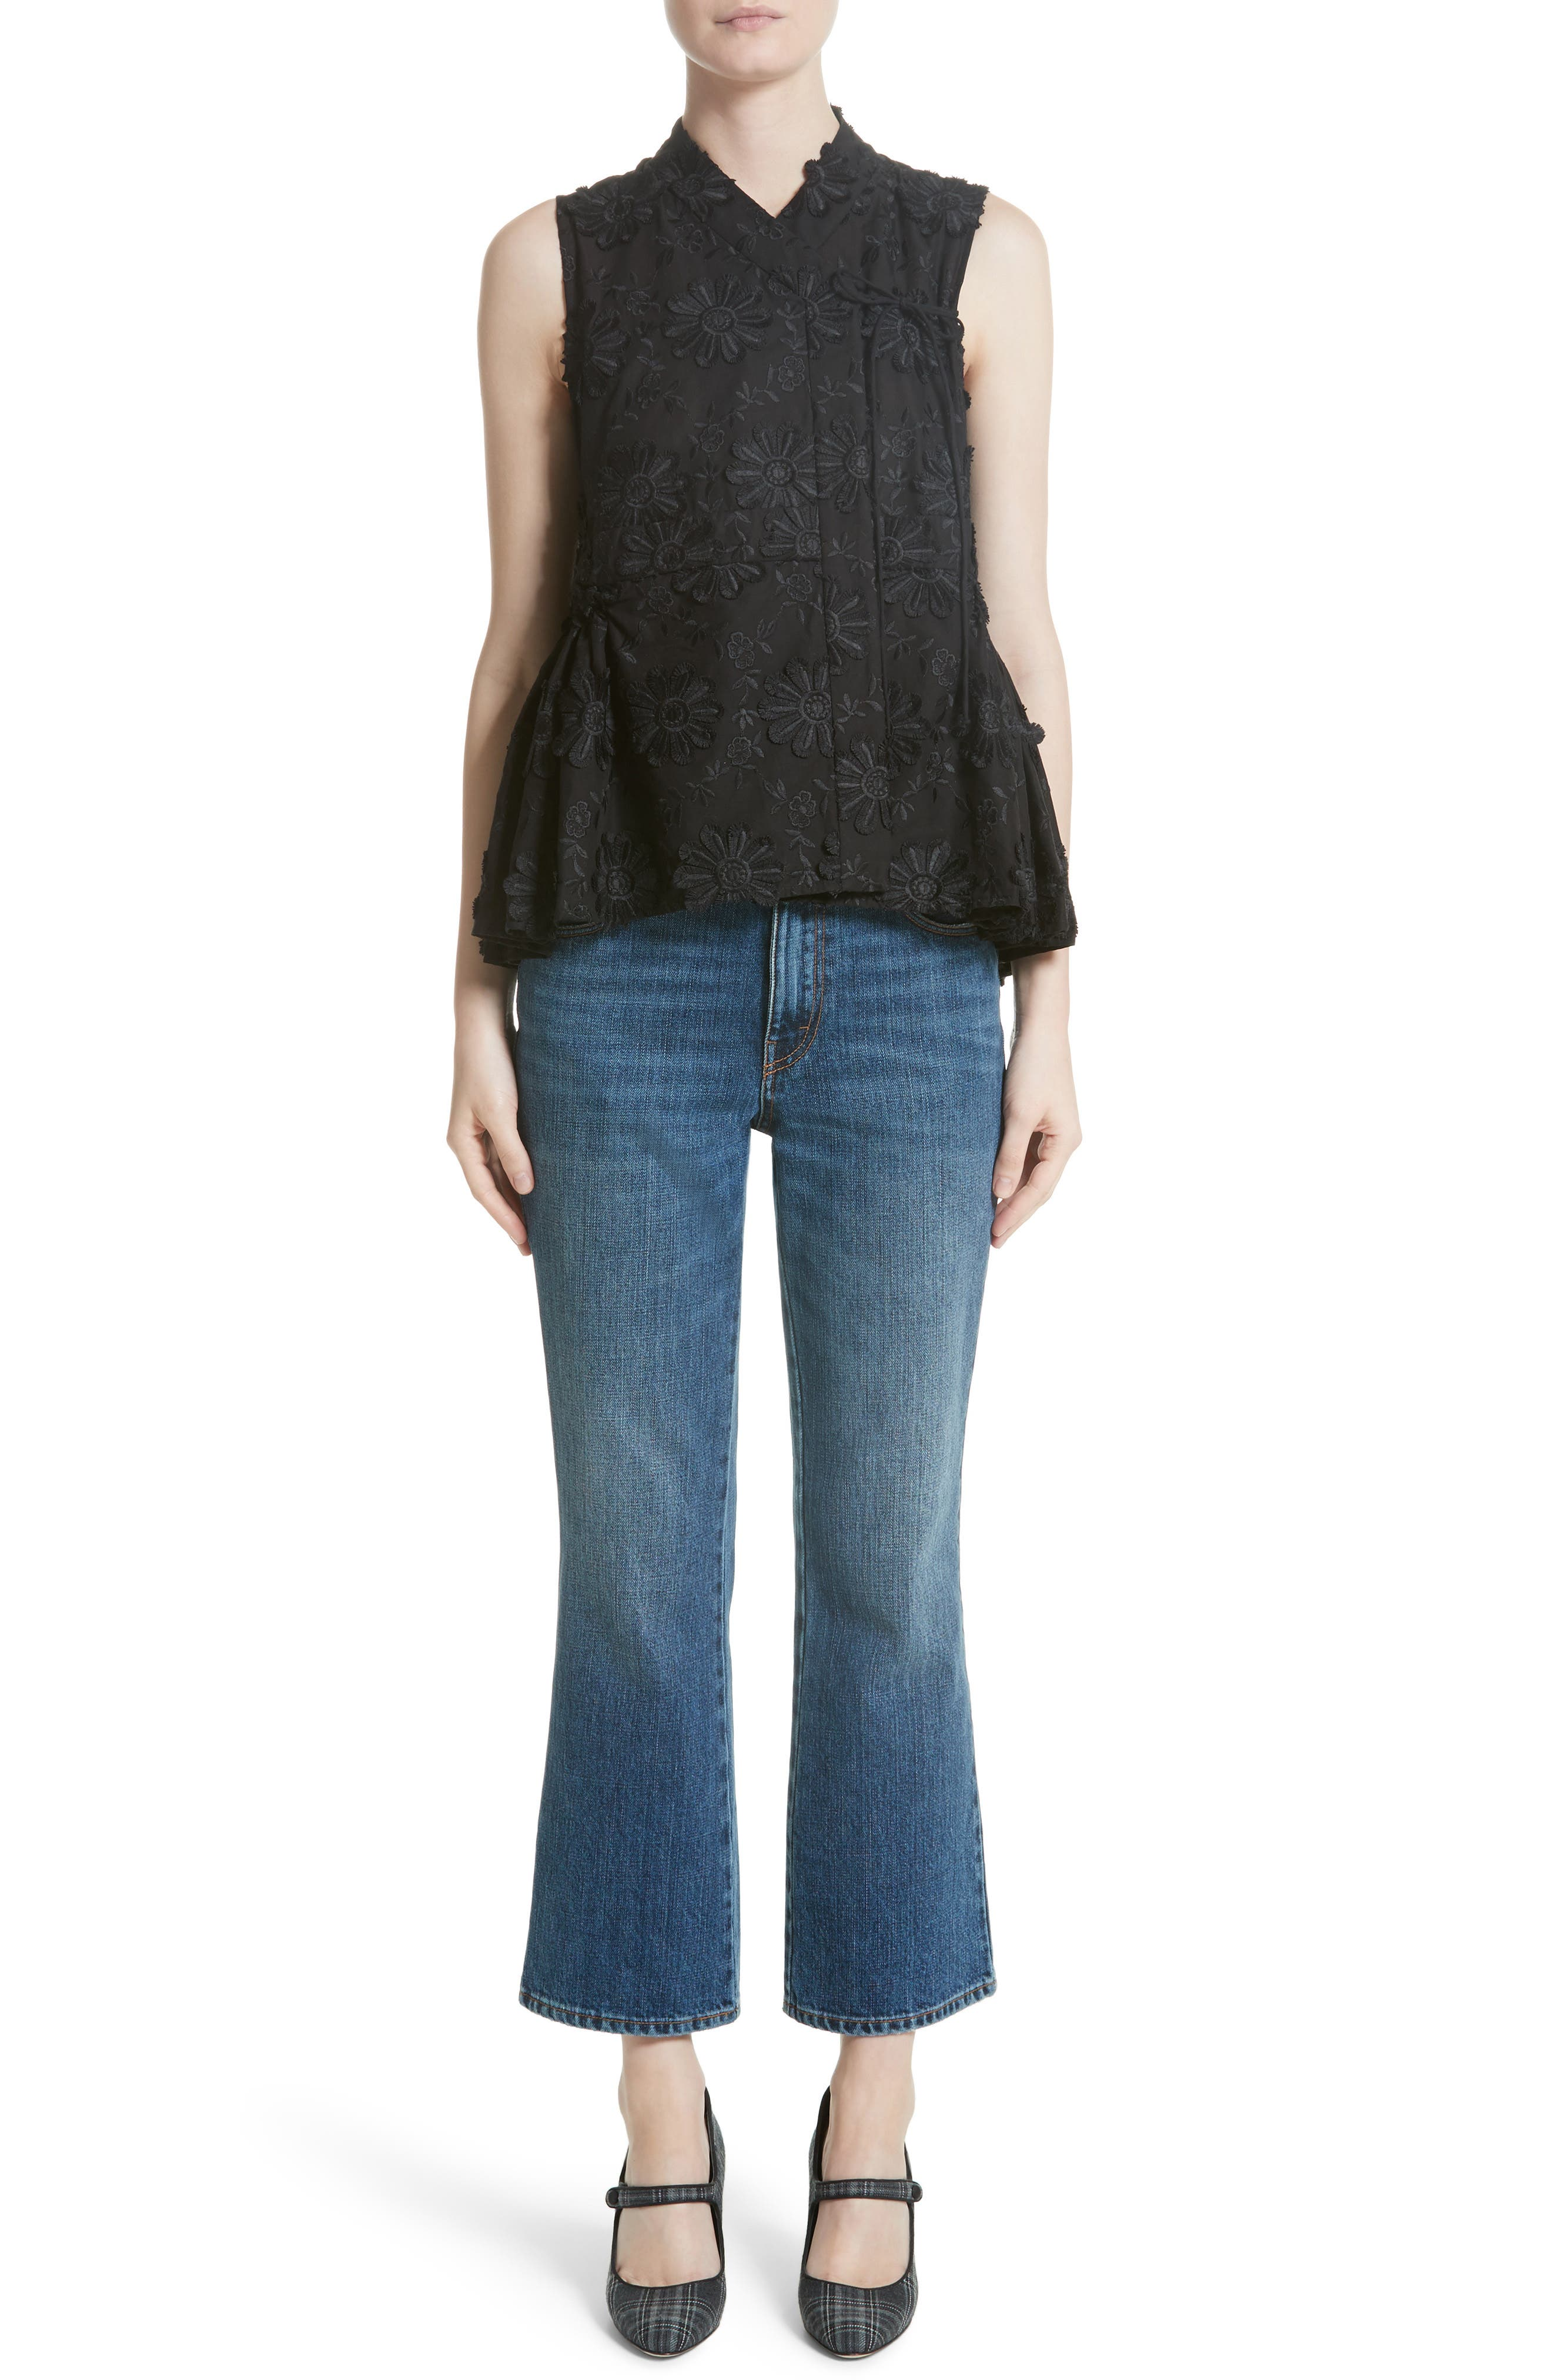 Floral Embroidered Peplum top,                             Alternate thumbnail 8, color,                             Black